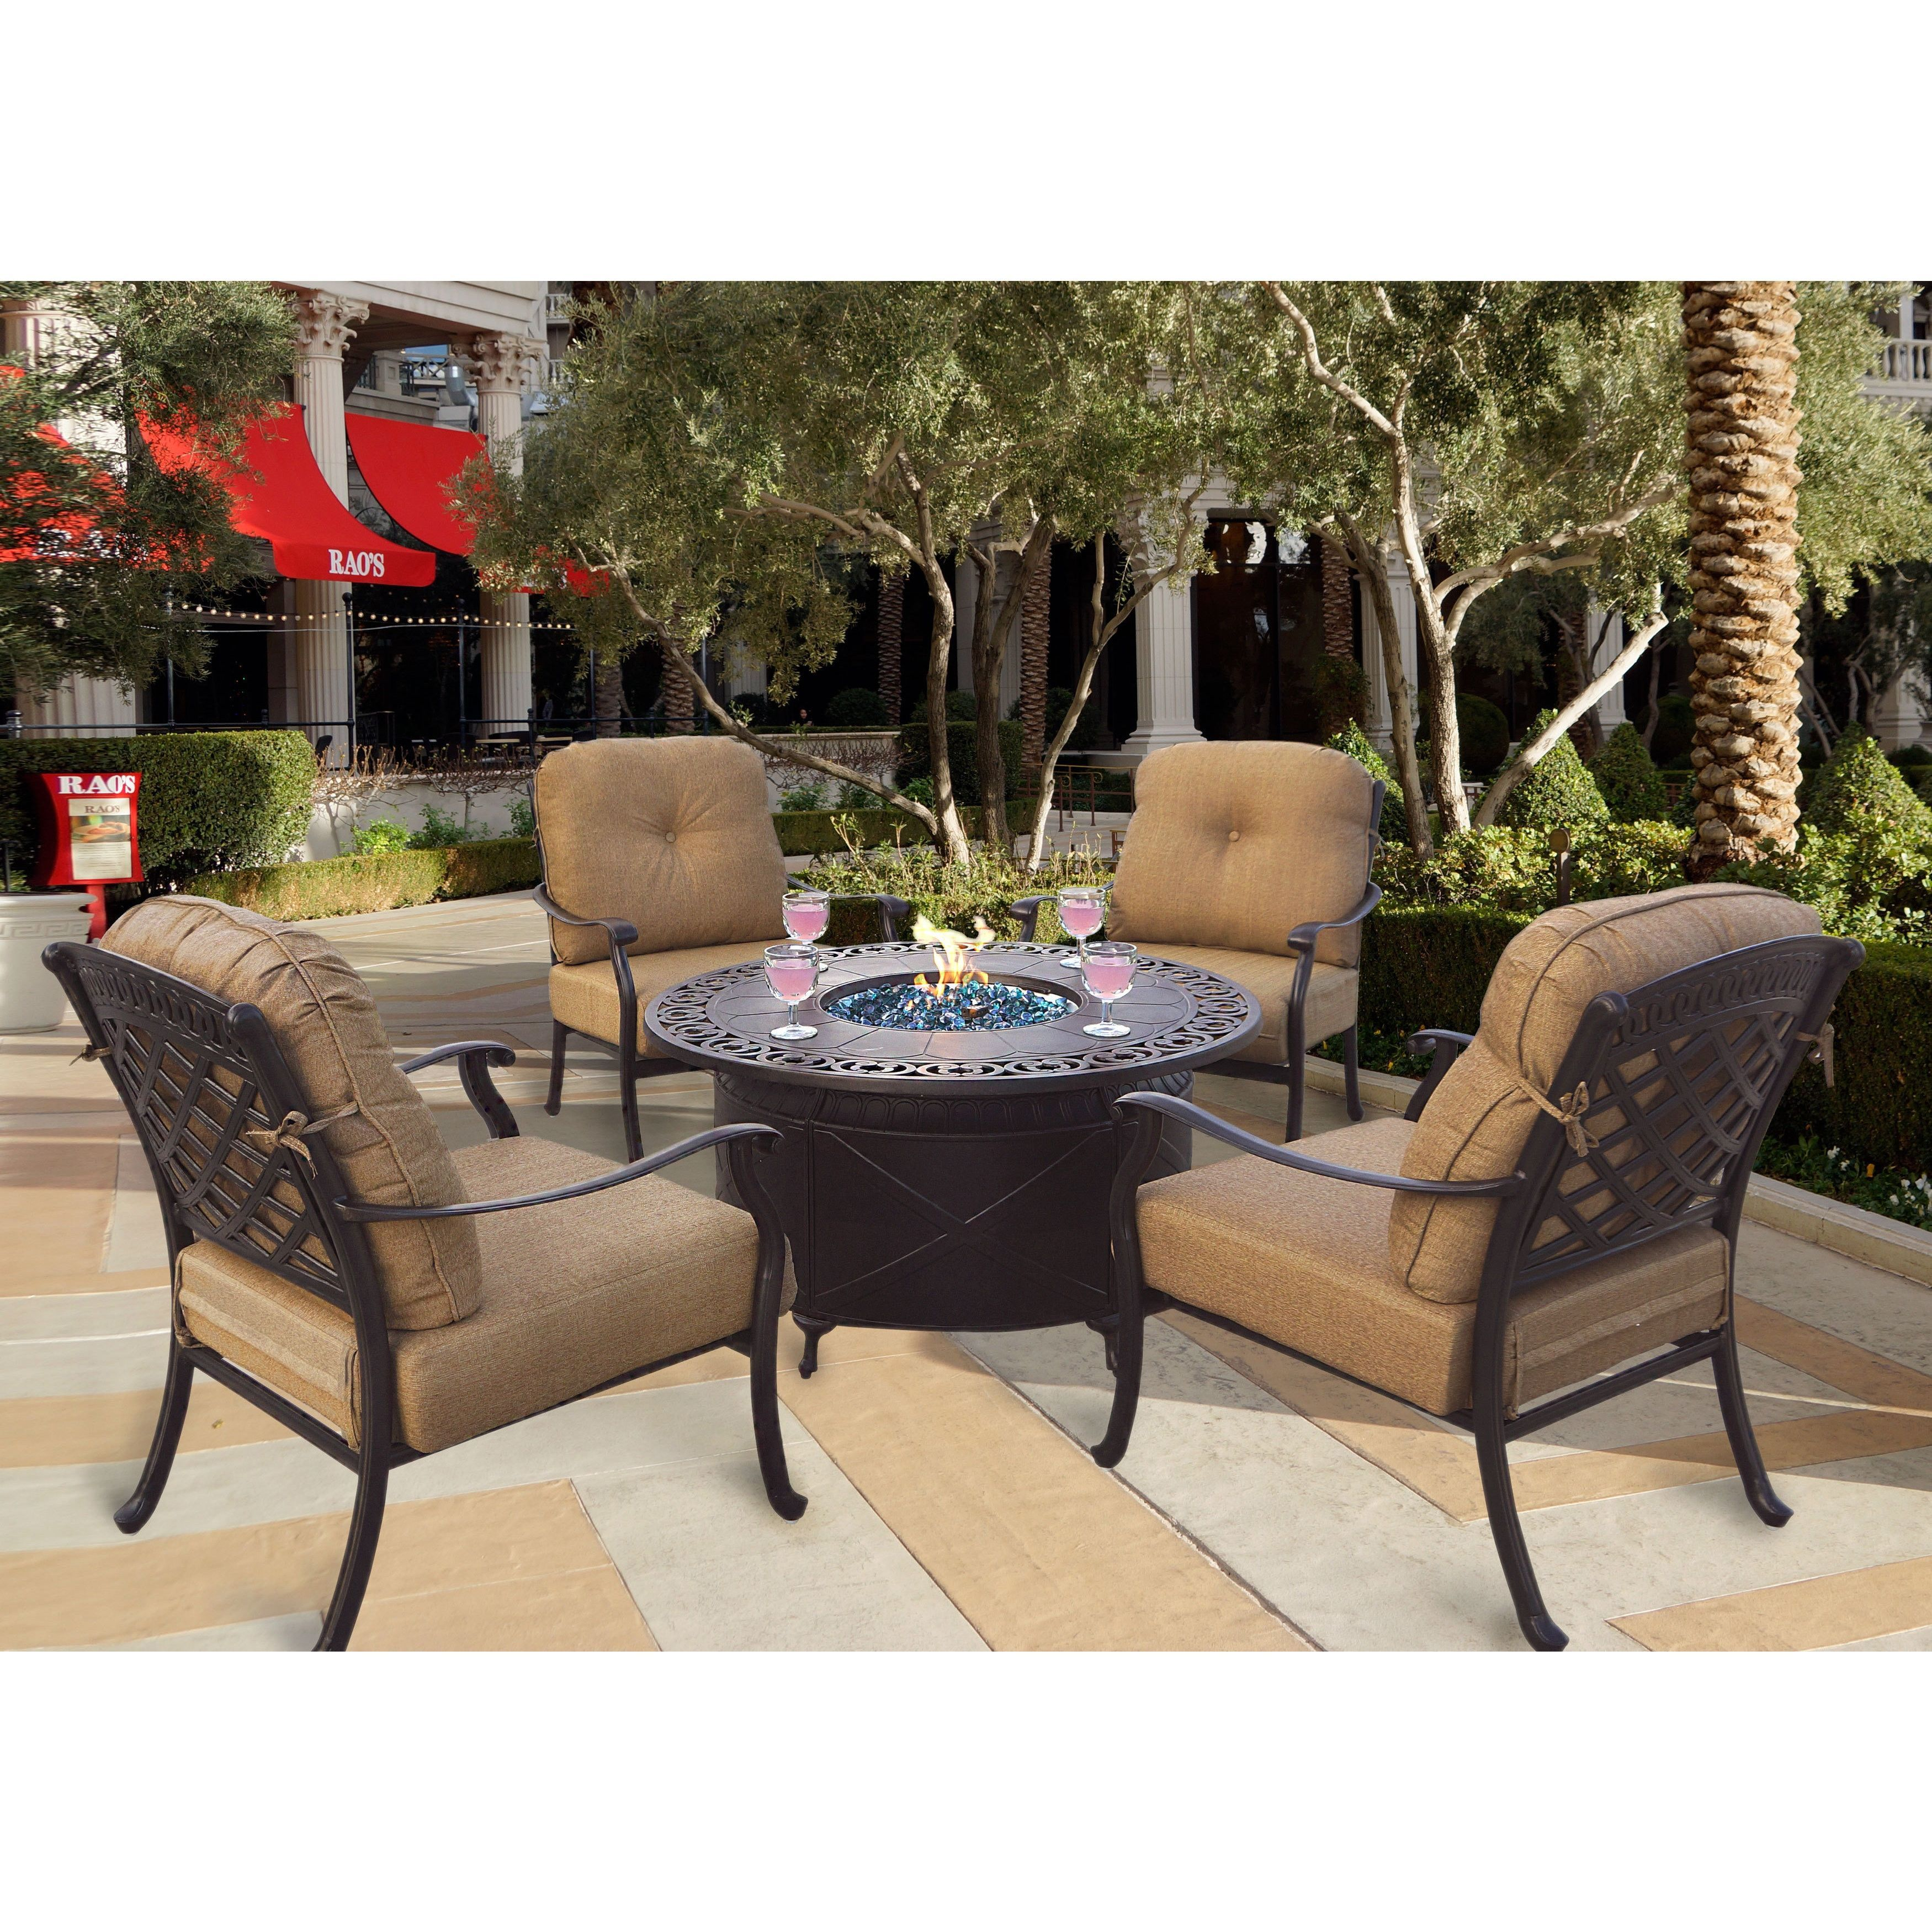 Darlee Oceanside Cast Aluminum 5 Piece Chat Set 47 Round Propane Fire Pit Table Antique Bronze Beige Size Sets Patio Furniture